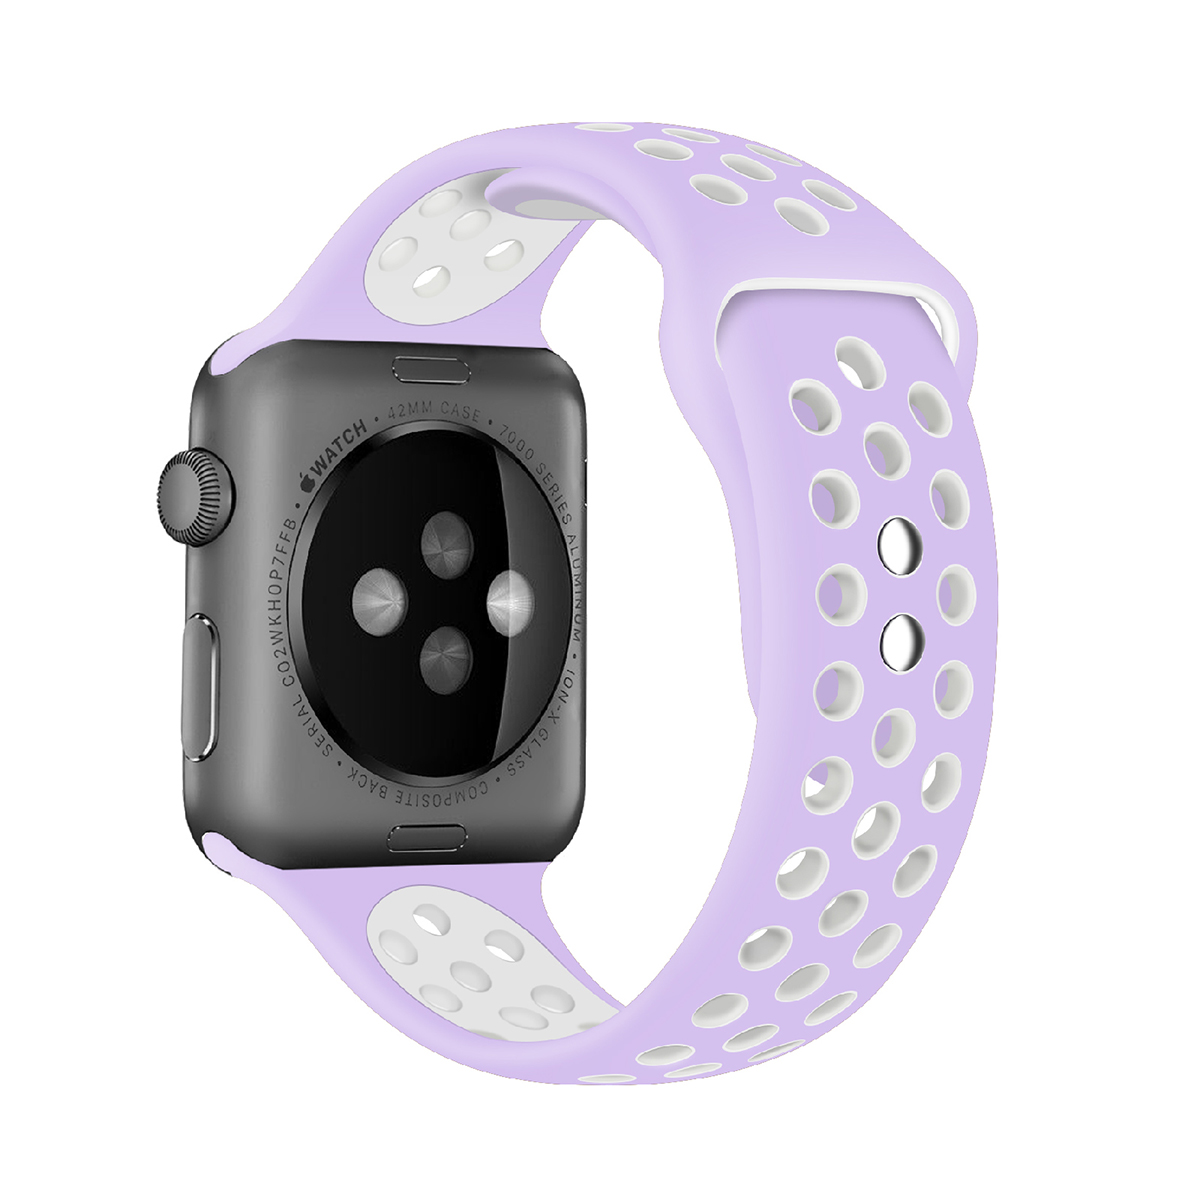 Promate Silicone Apple Watch 38mm/40mm Strap, Dual-Toned Silicone Sport Band w/ Lock Pin for Apple Series 1/2/3/4 M/L/S, Nike+, Sports-  Purple White